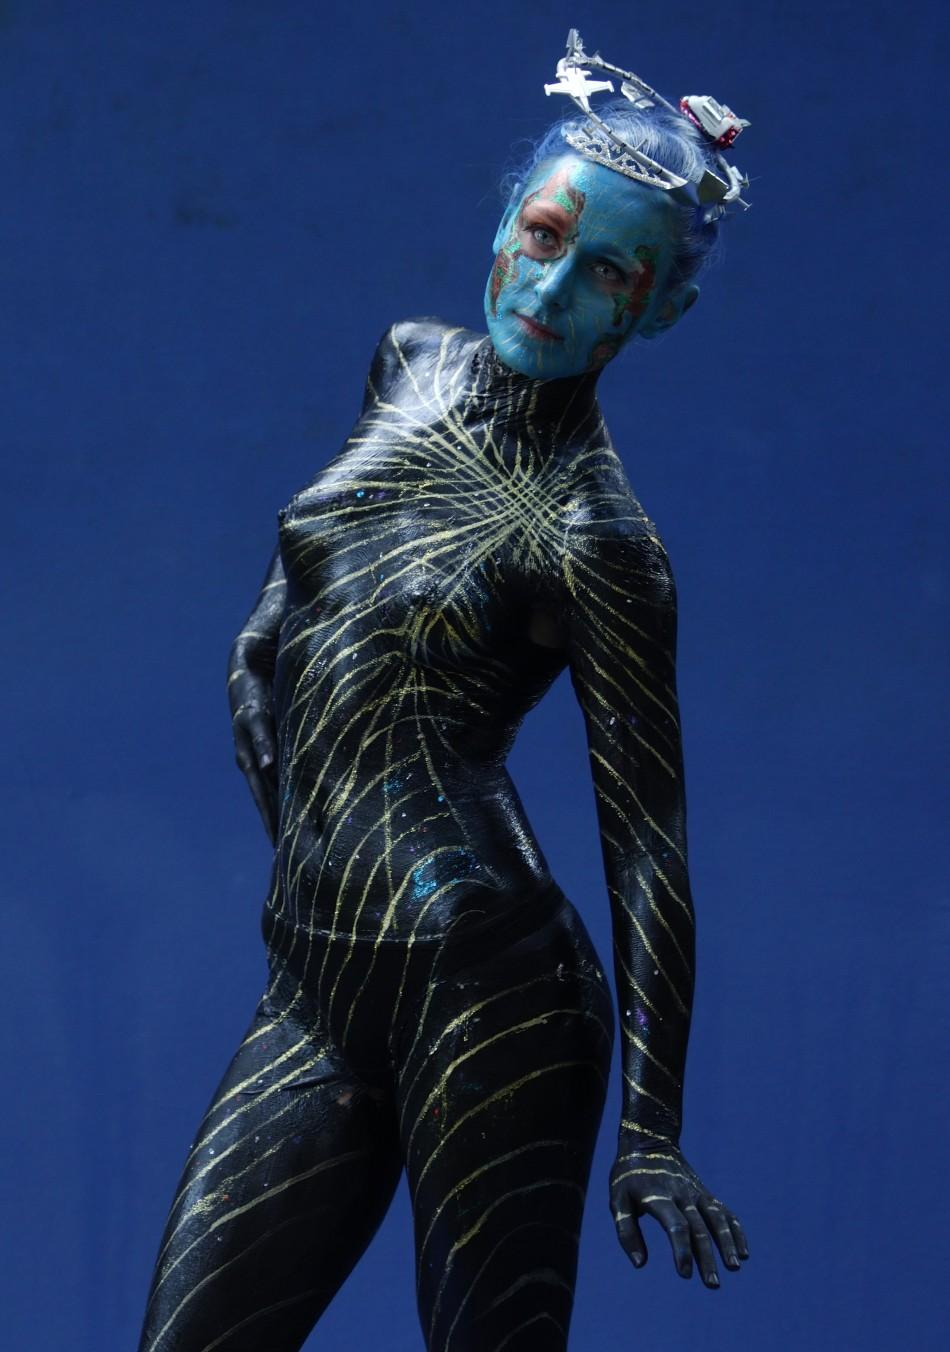 A models poses during the annual World Bodypainting Festival in Poertschach